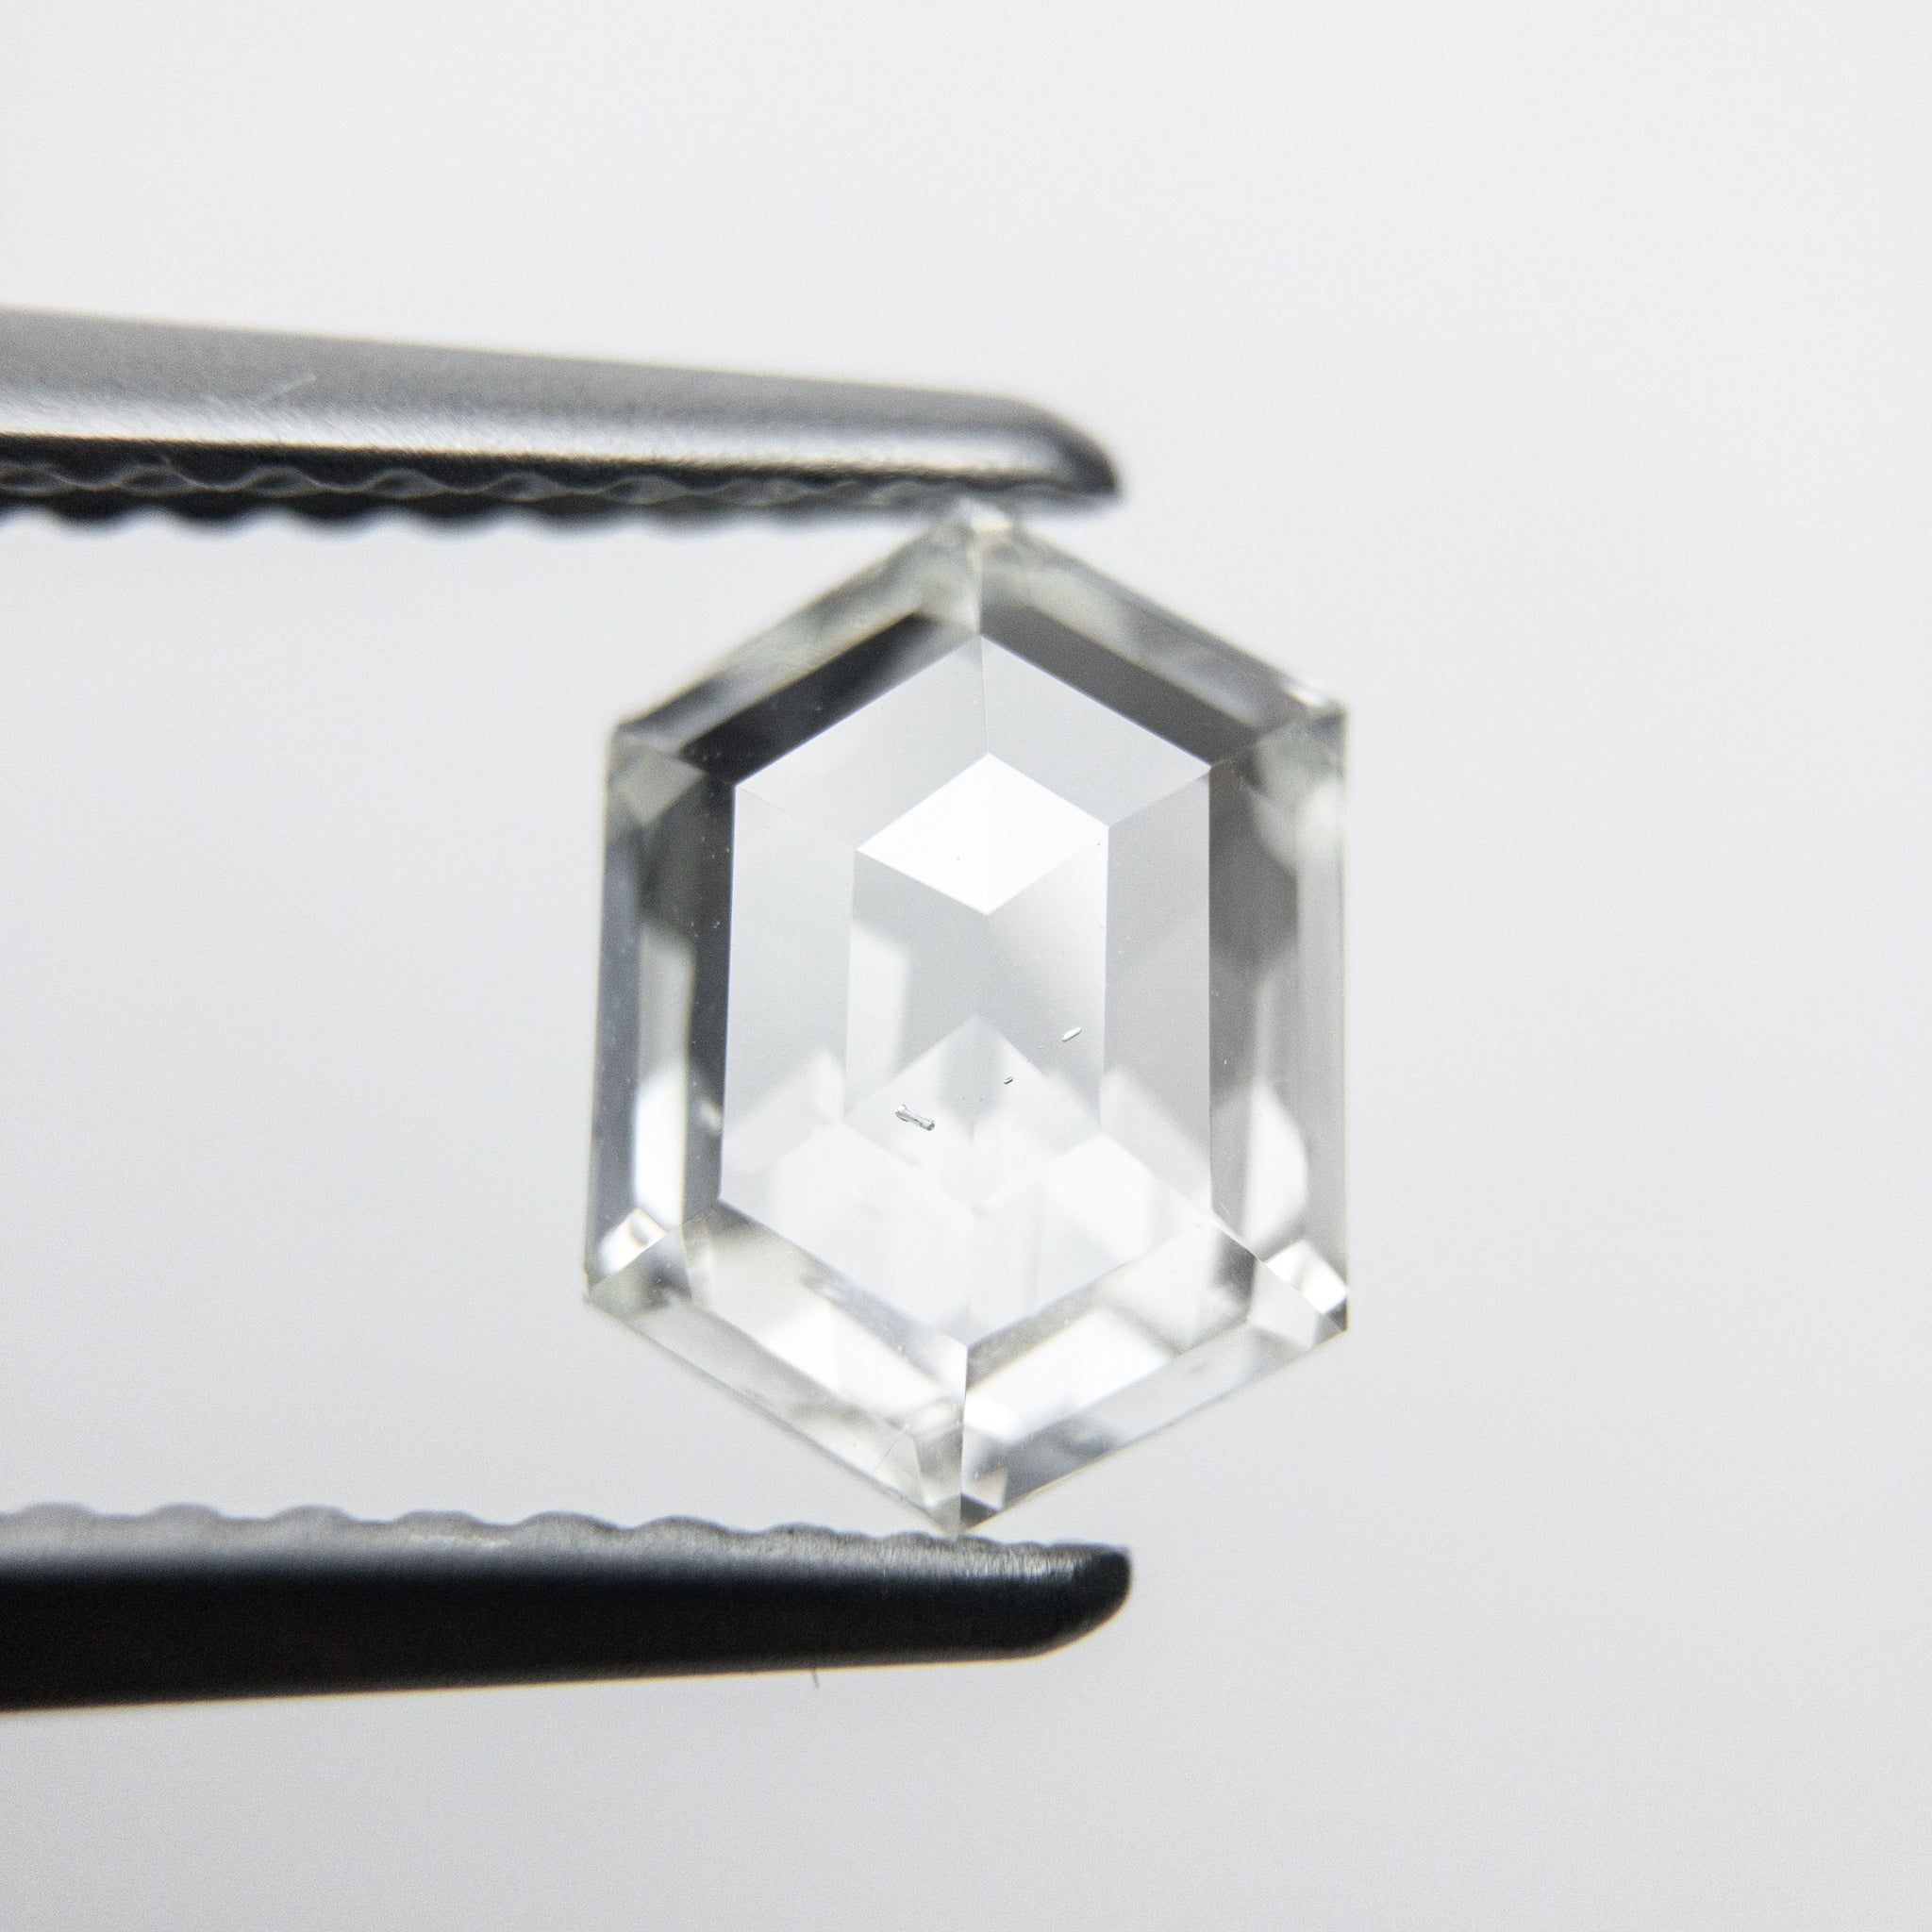 1.13ct 7.79x5.65x2.69mm SI1 I Hexagon Rosecut 18035-01